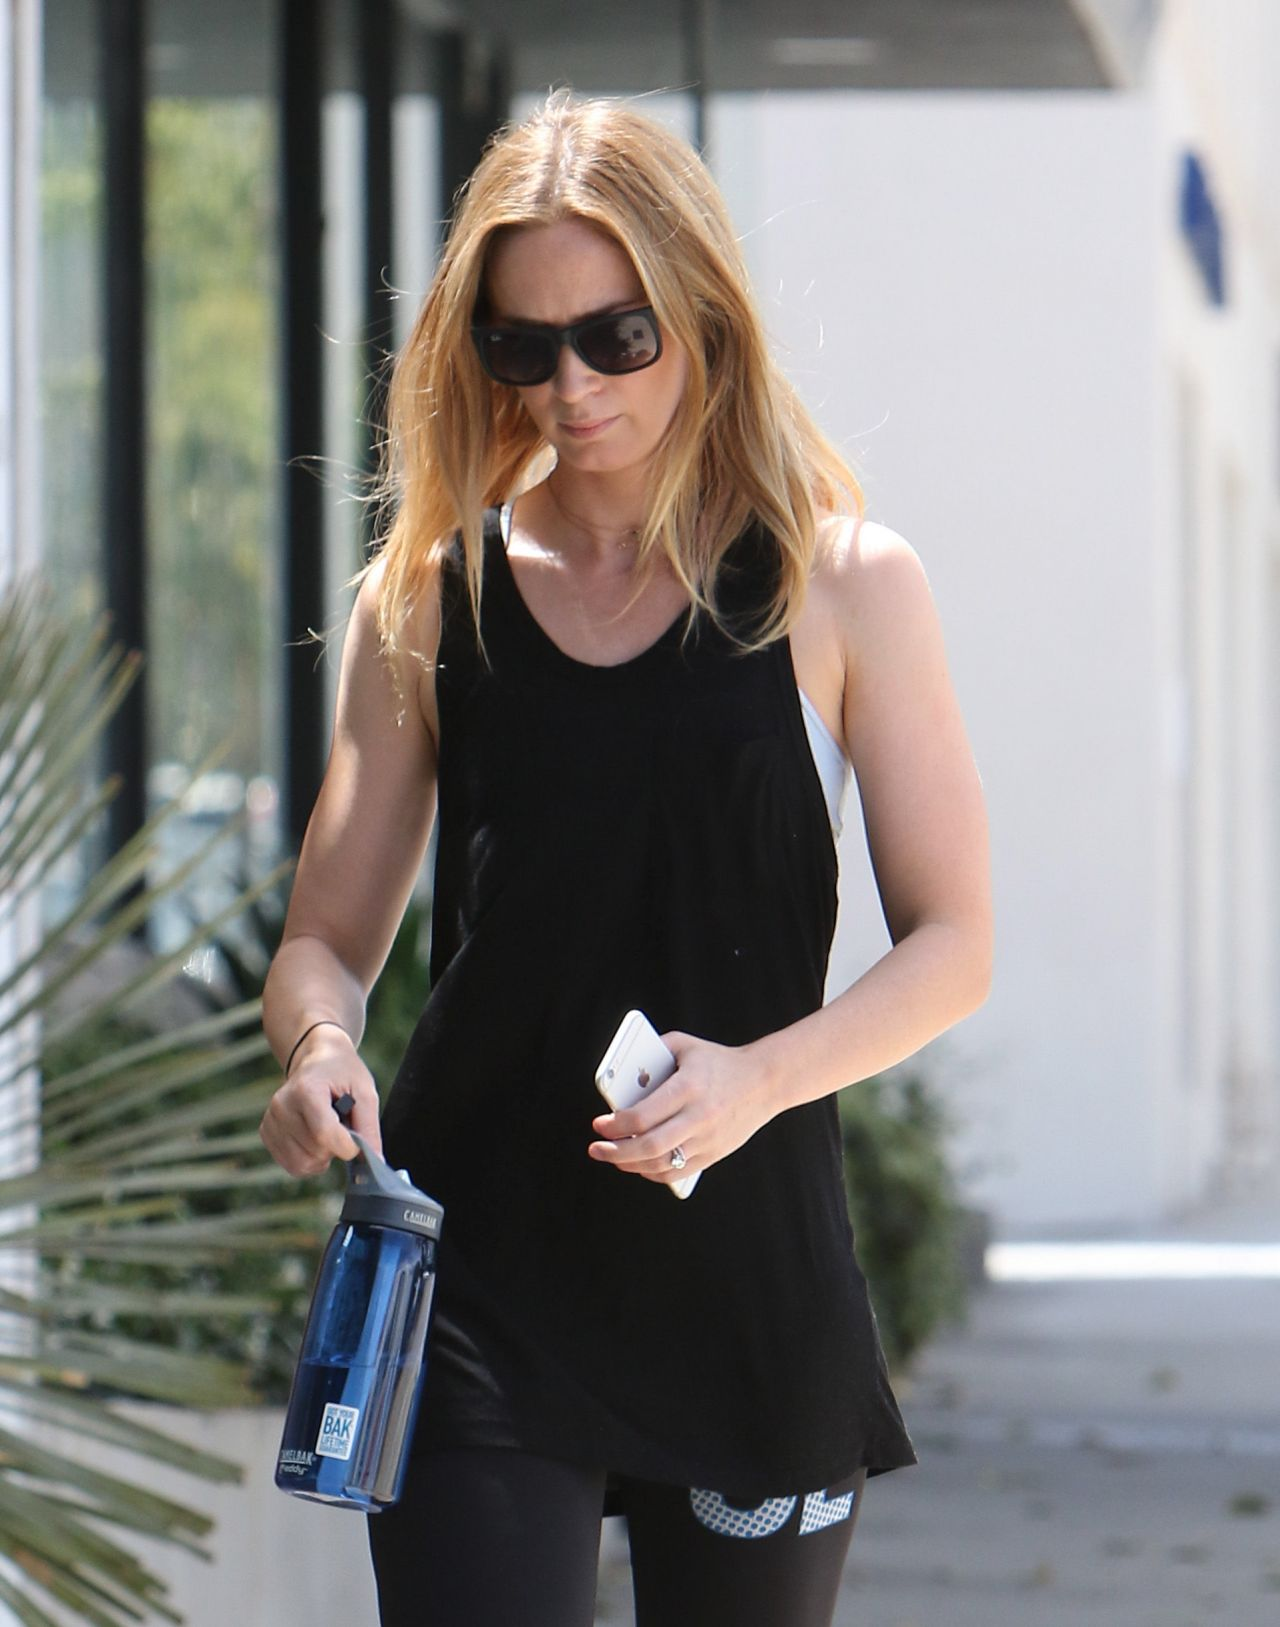 Emily Blunt In Leggings Going To Gym In West Hollywood